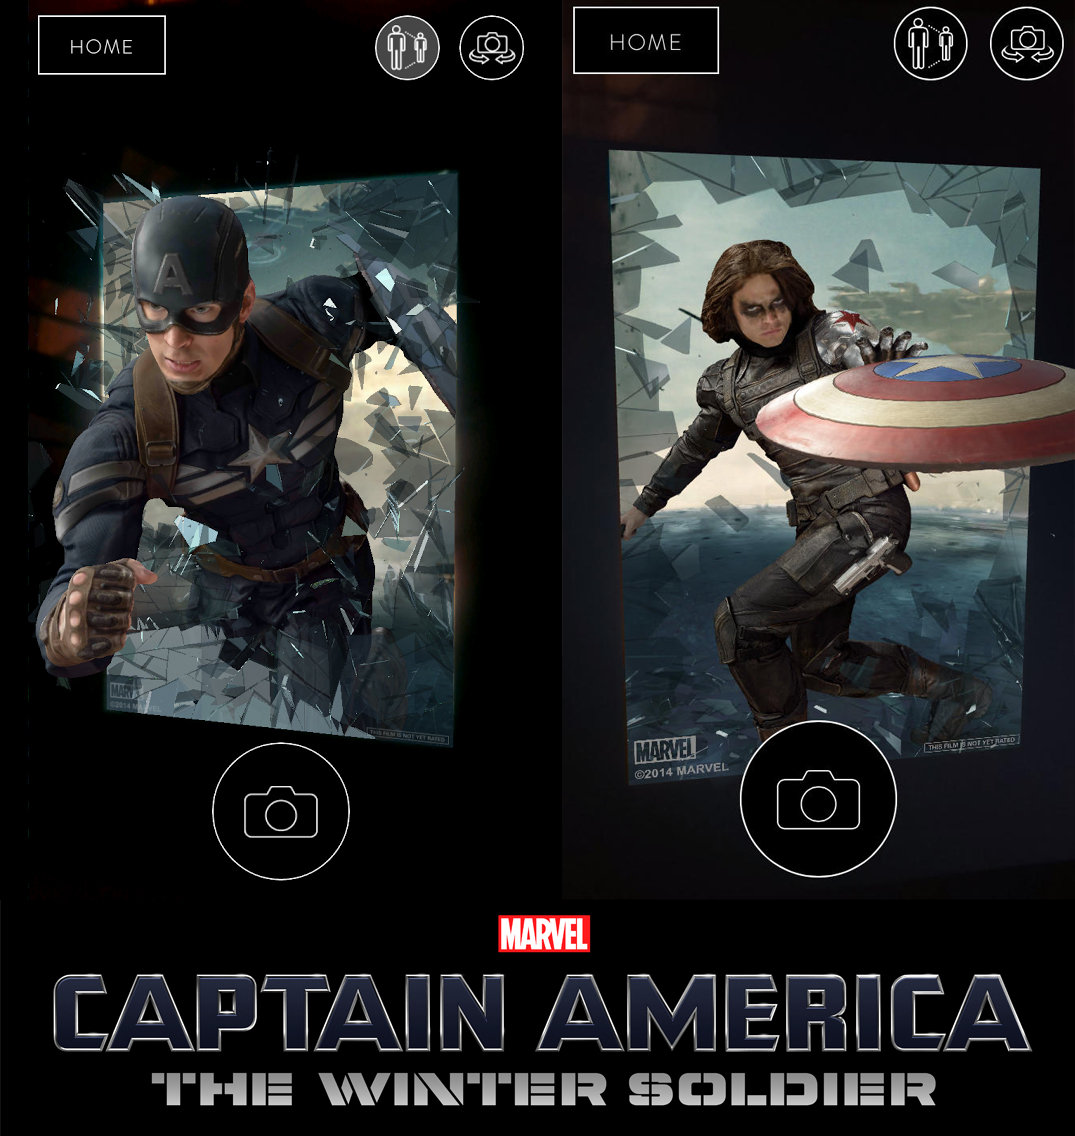 The Captain American experience